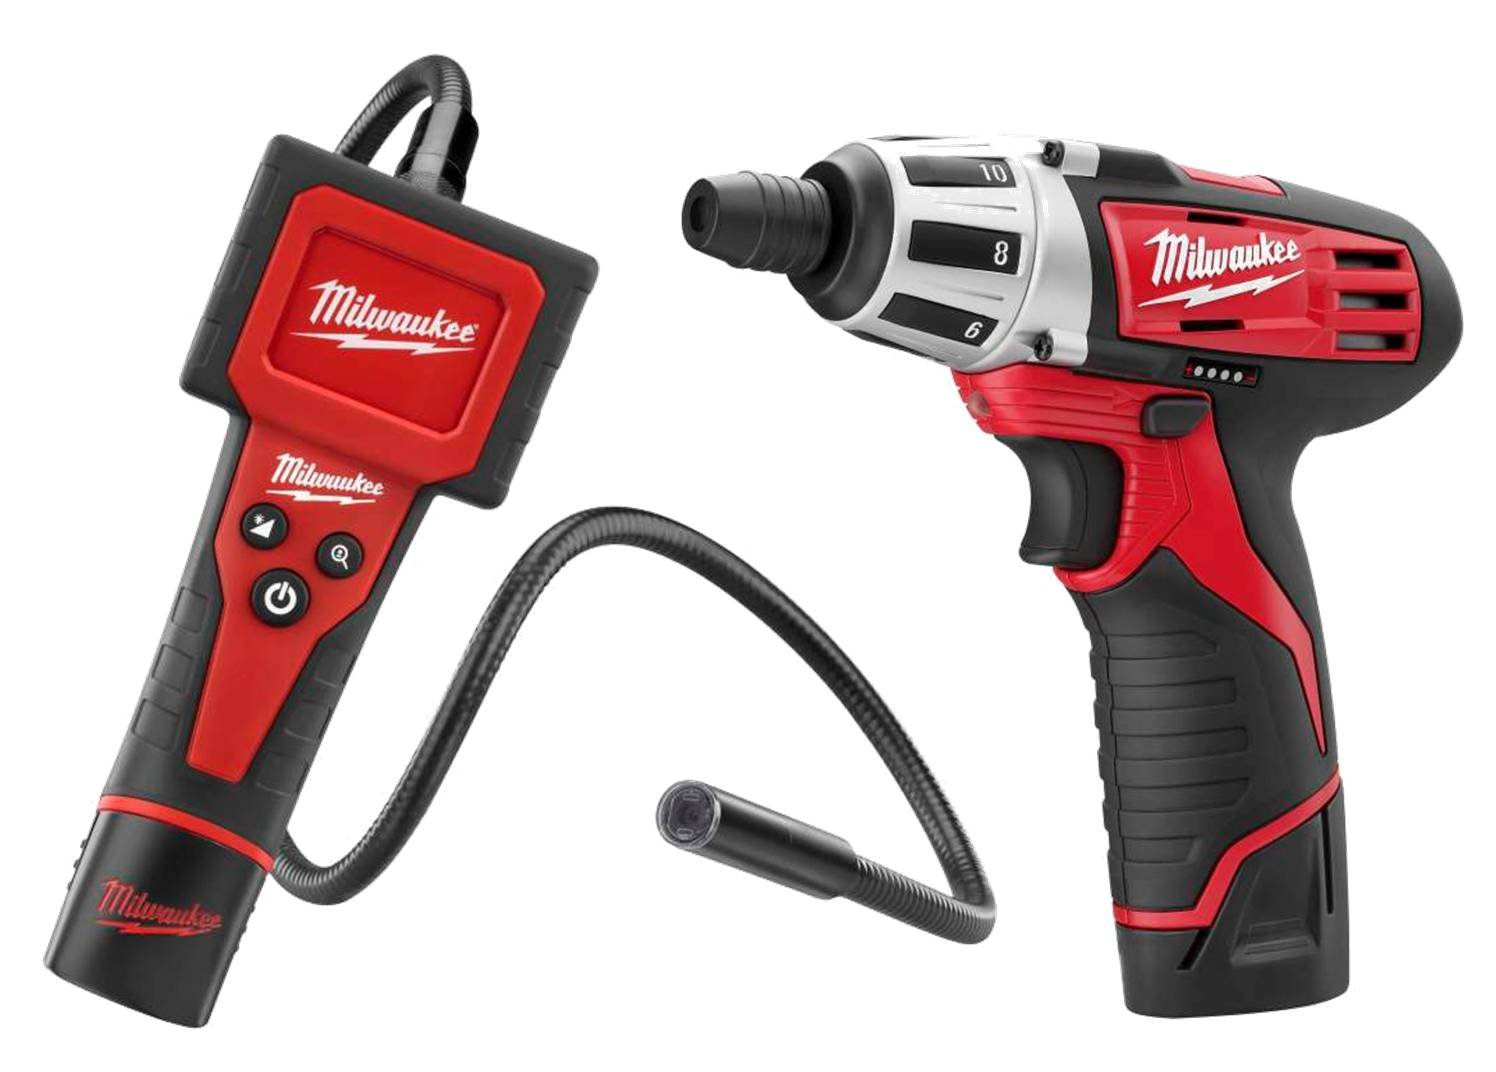 Milwaukee 2310 12-Volt Lithium-Ion M-Spector Digital Inspection Camera and 2401 M12 Compact Screwdriver Combo Kit